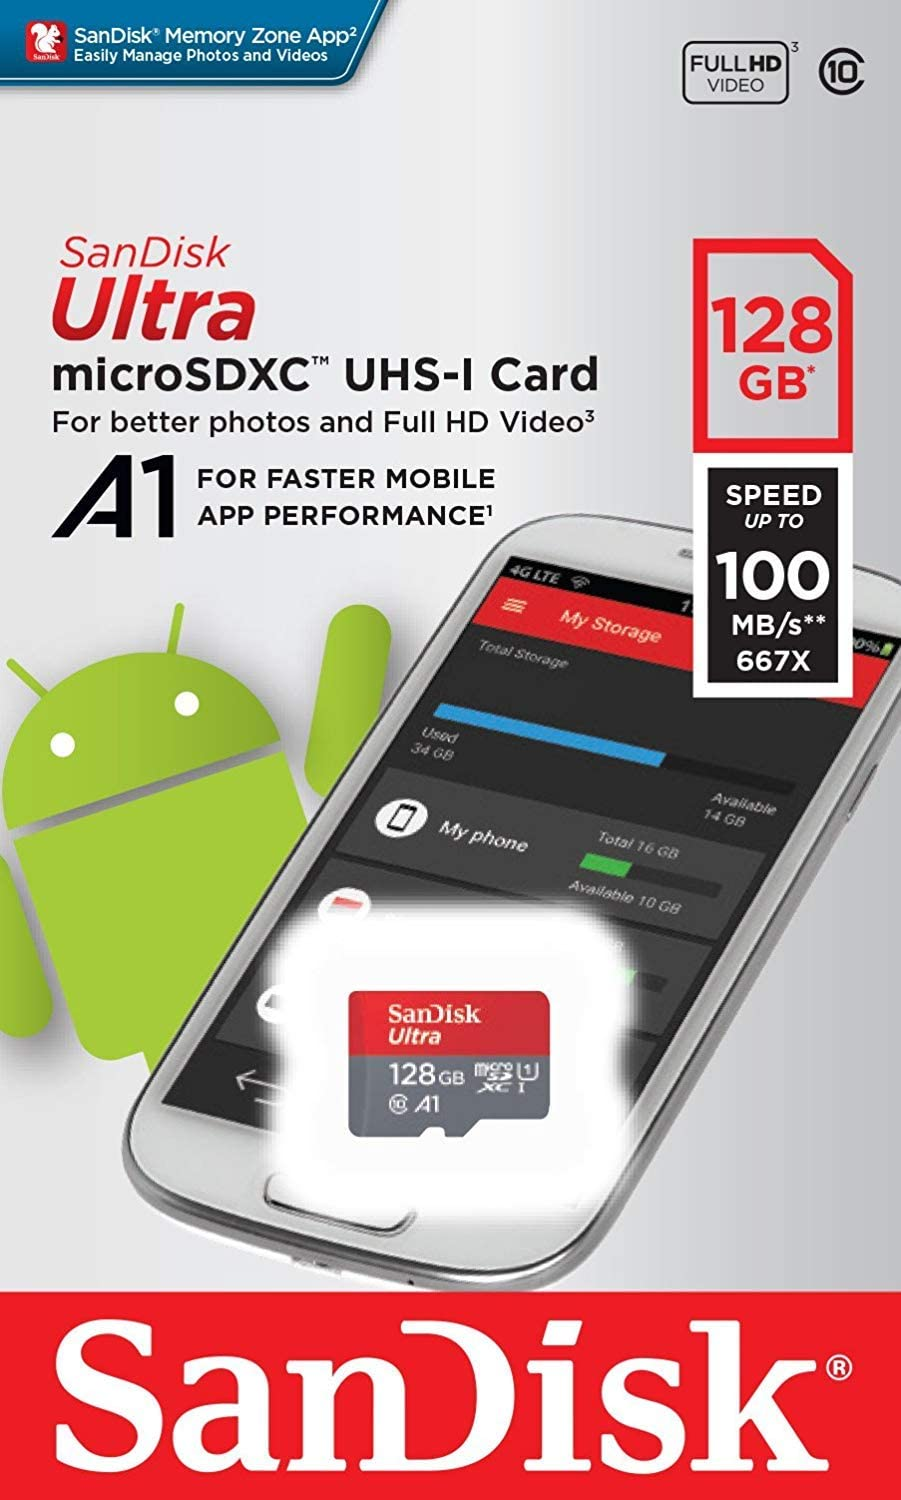 SanDisk Ultra 128GB MicroSDXC Verified for Xolo Q1000 Opus2 by SanFlash 100MBs A1 U1 C10 Works with SanDisk